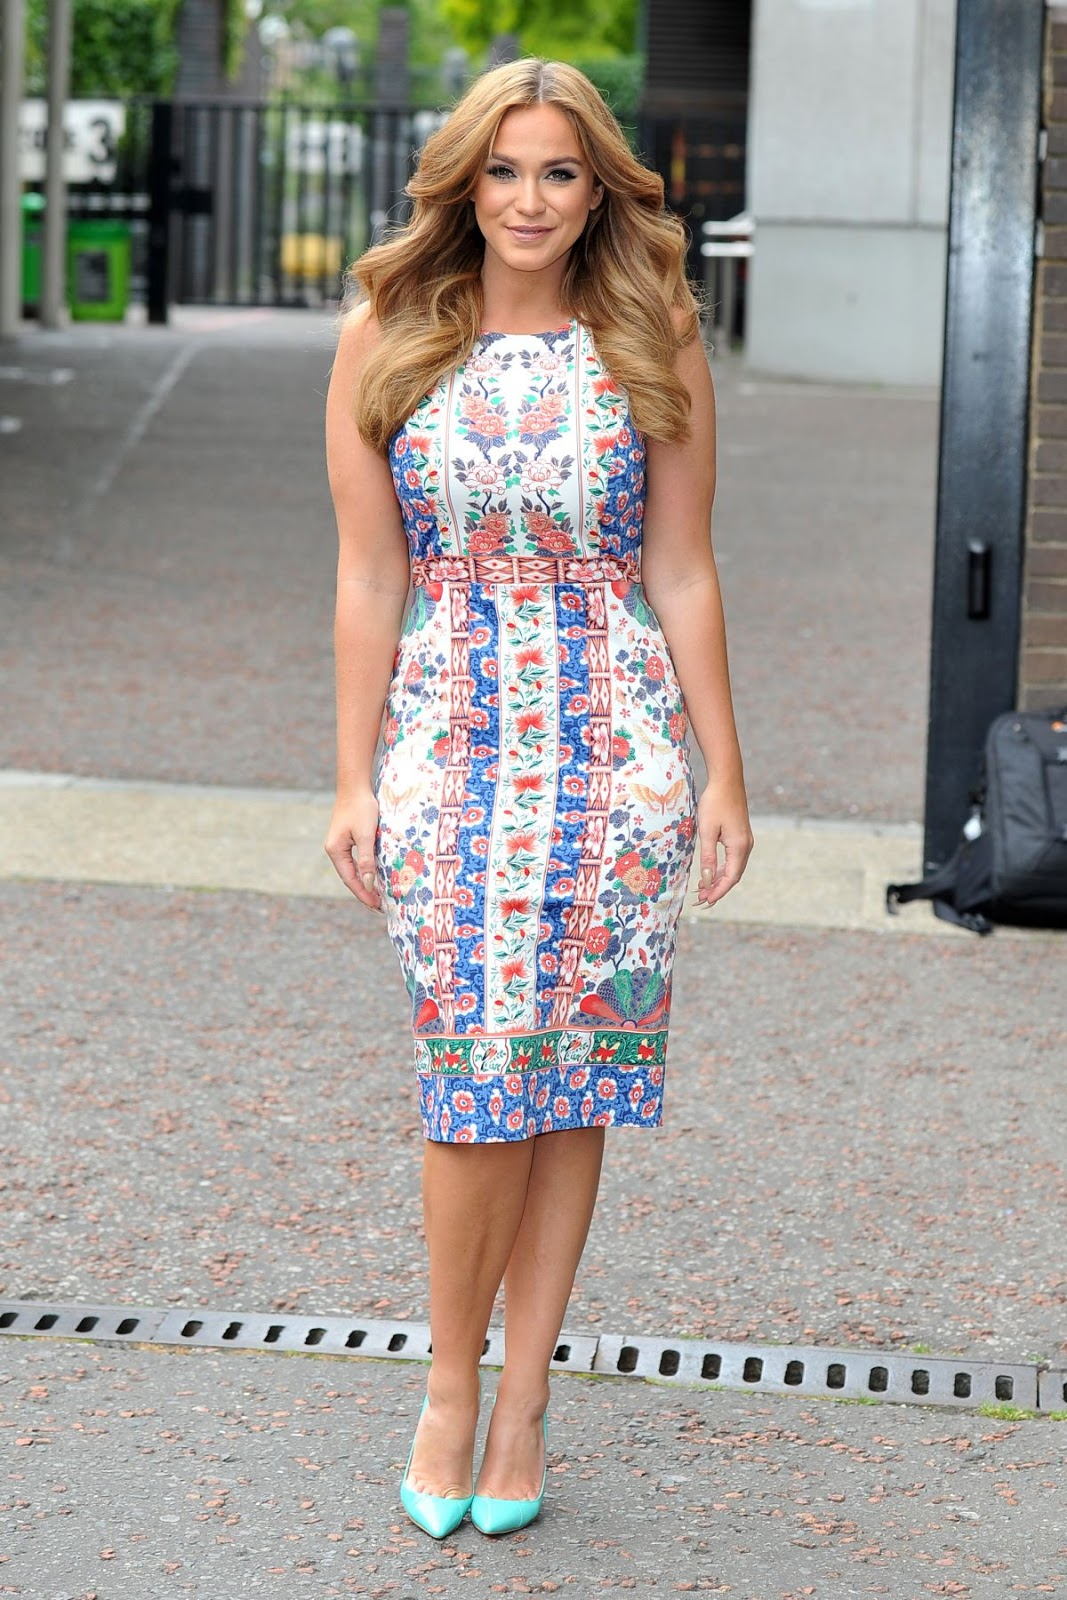 Judge Geordie actress Vicky Pattison at ITV Studios in London